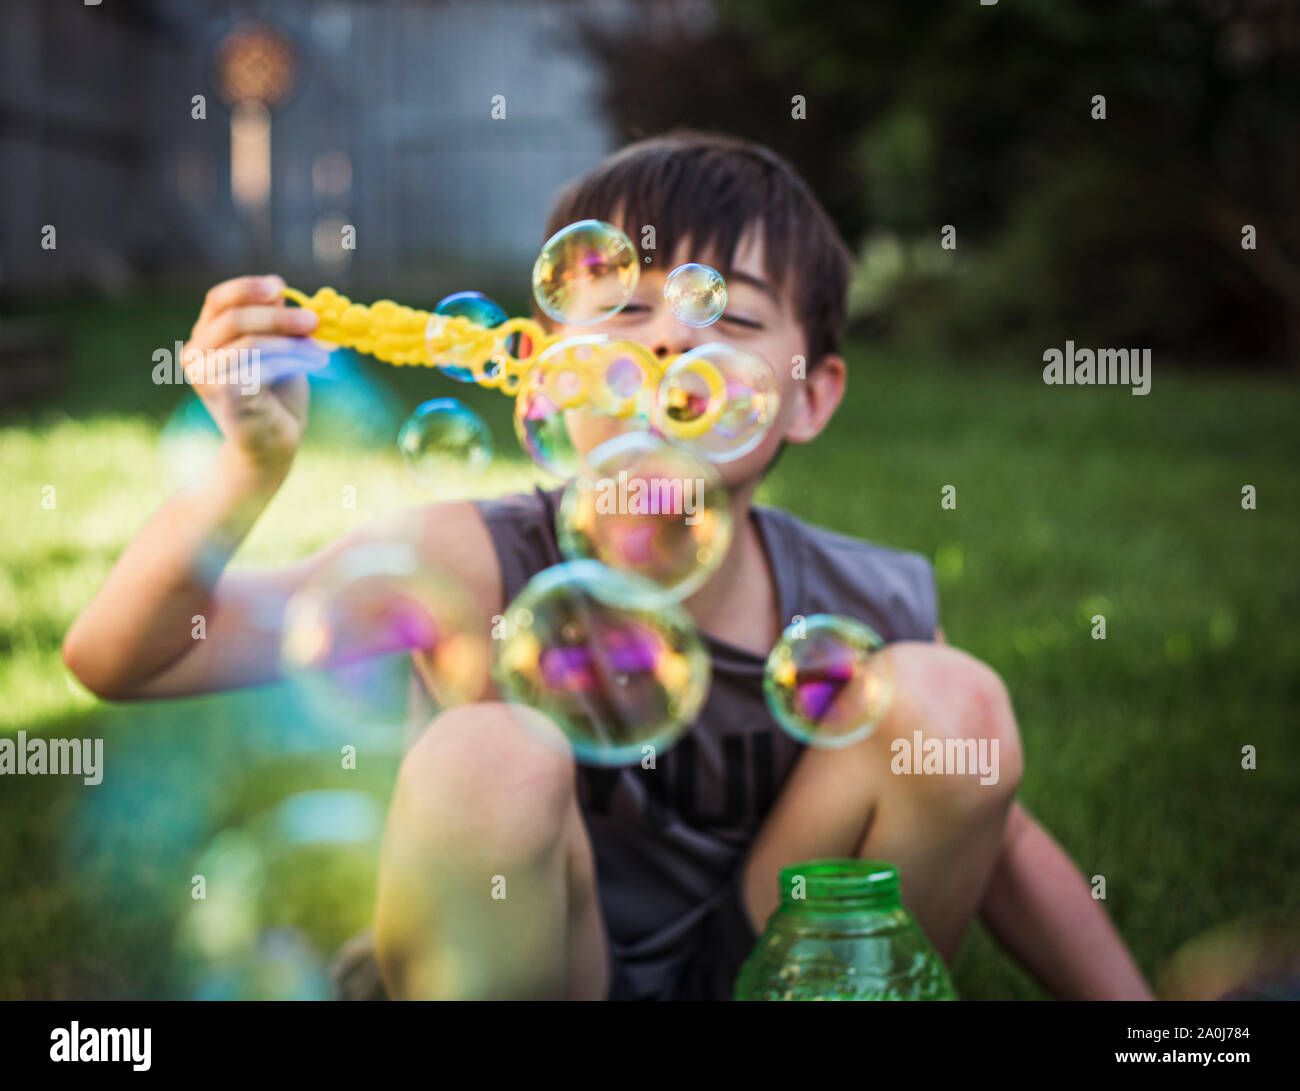 A young boy blowing bubbles outdoors on a summer day. Stock Photo